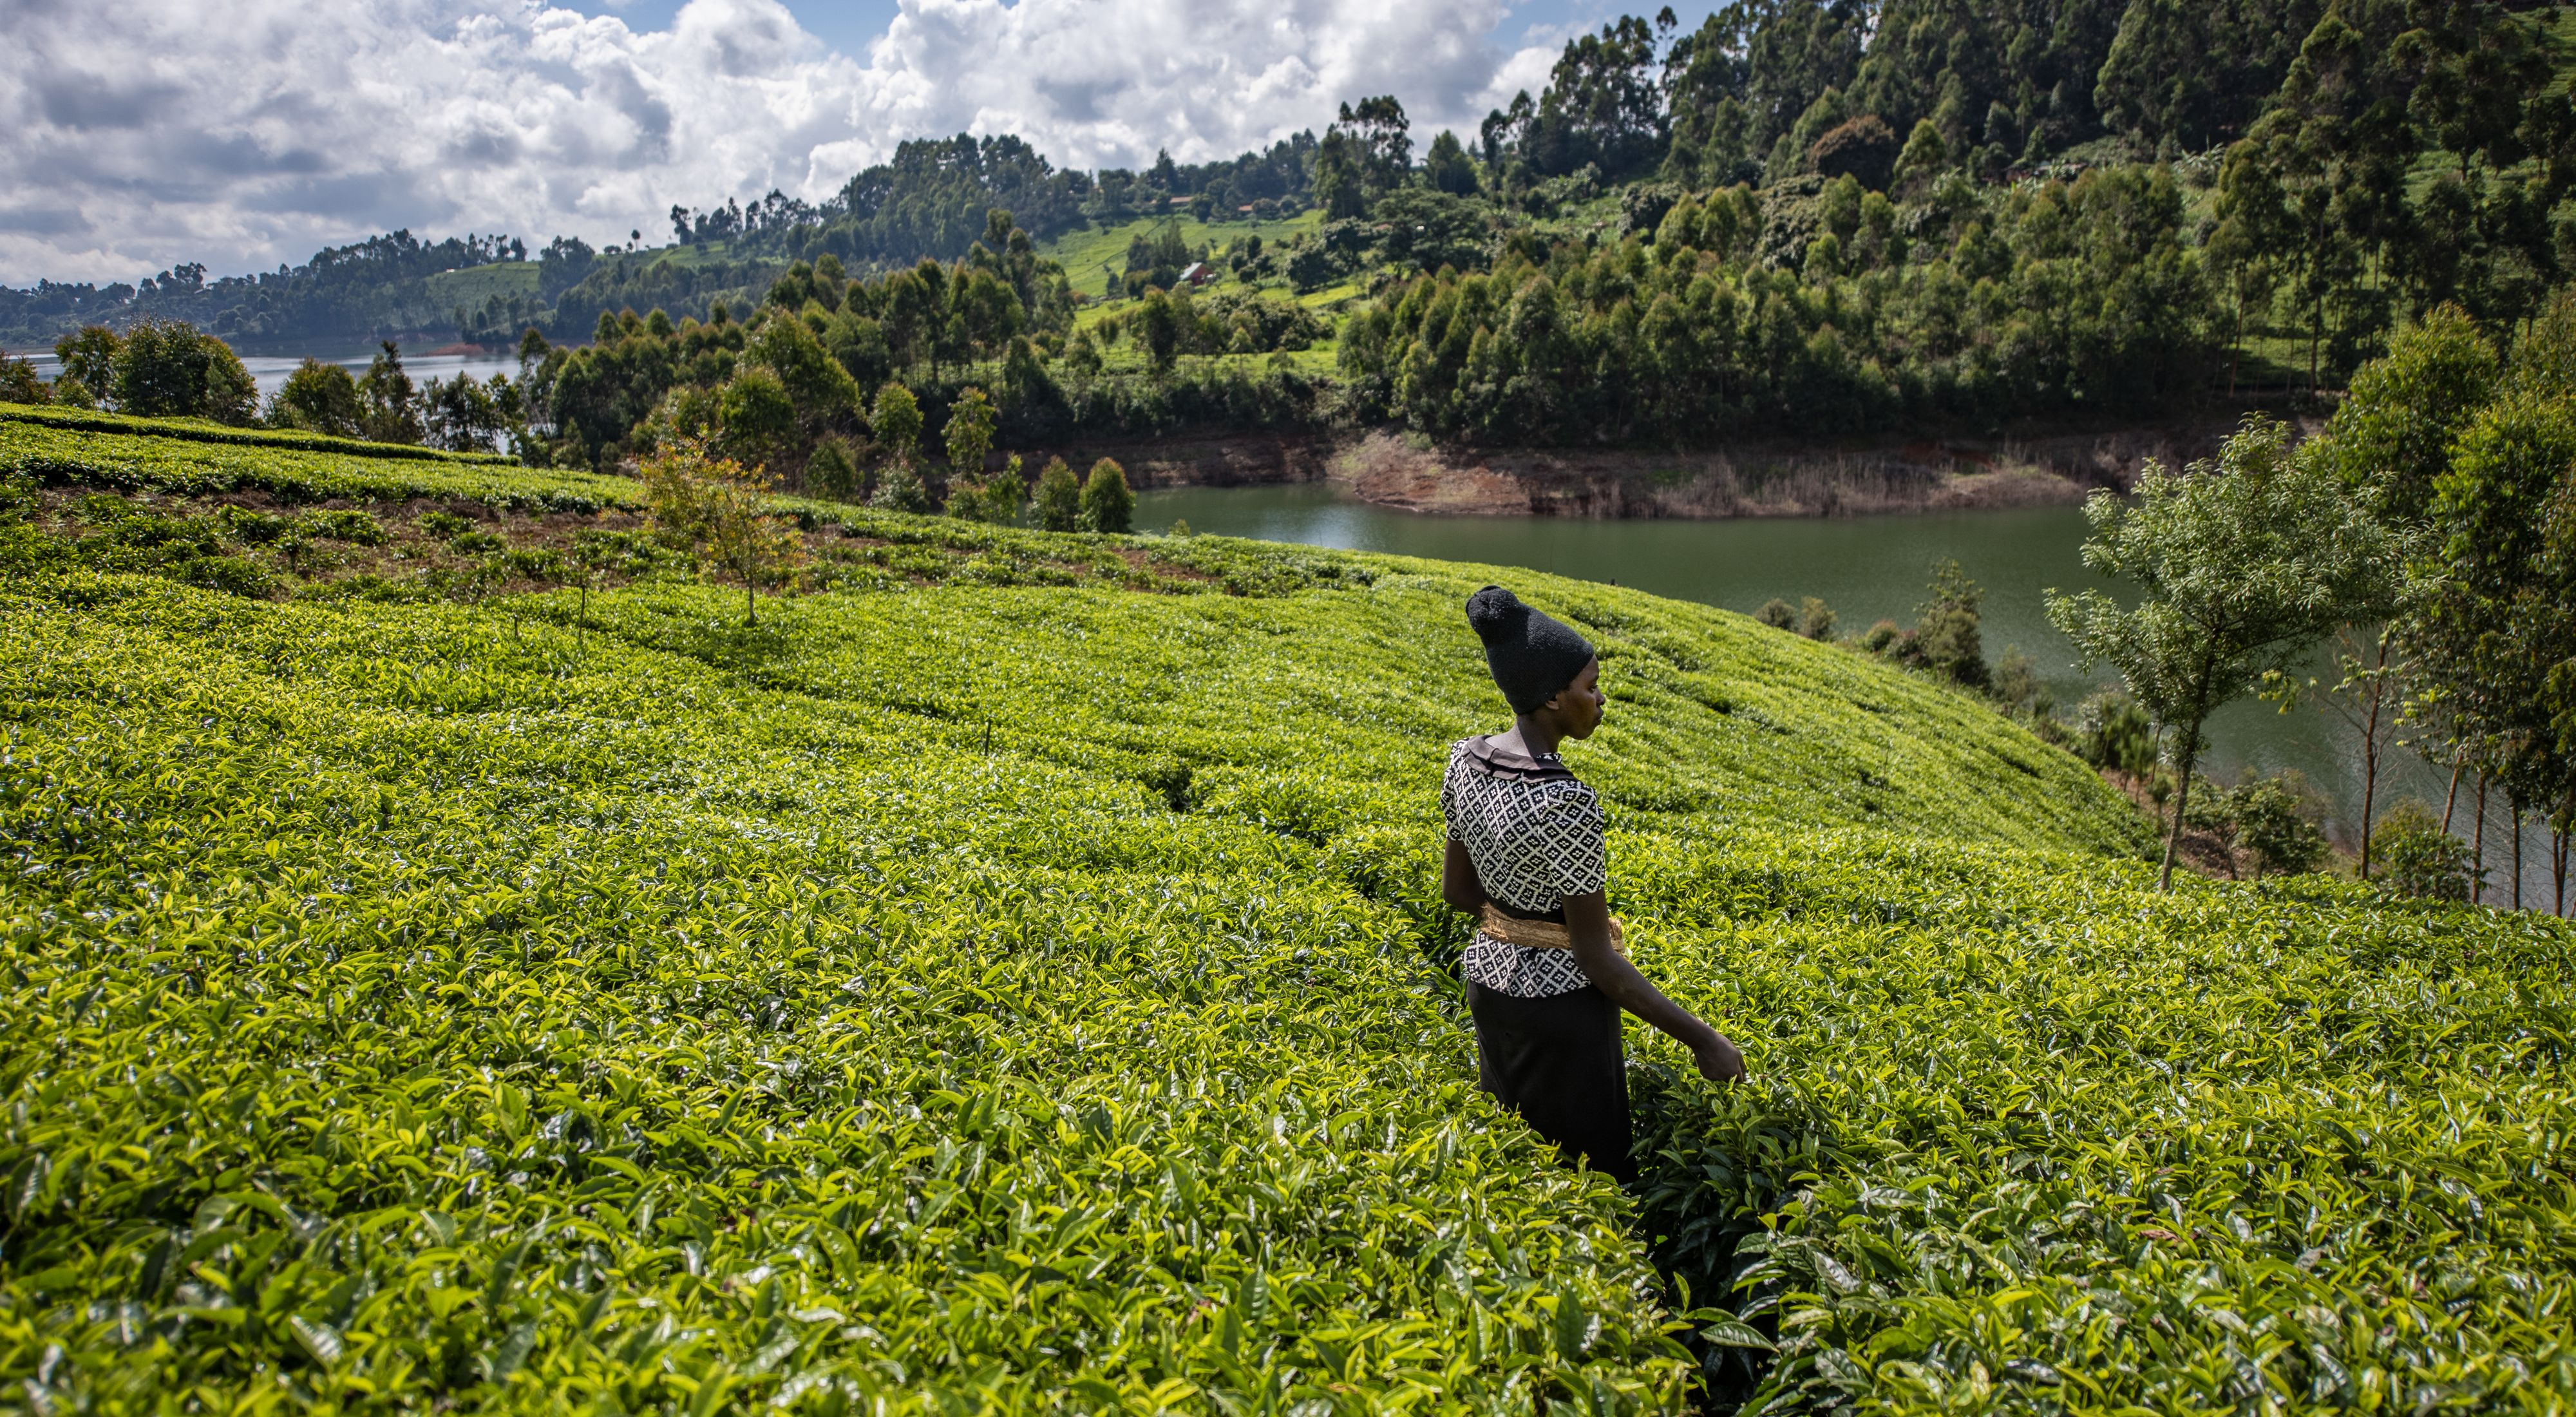 A woman stands in the midst of a lush tea farm near a reservoir